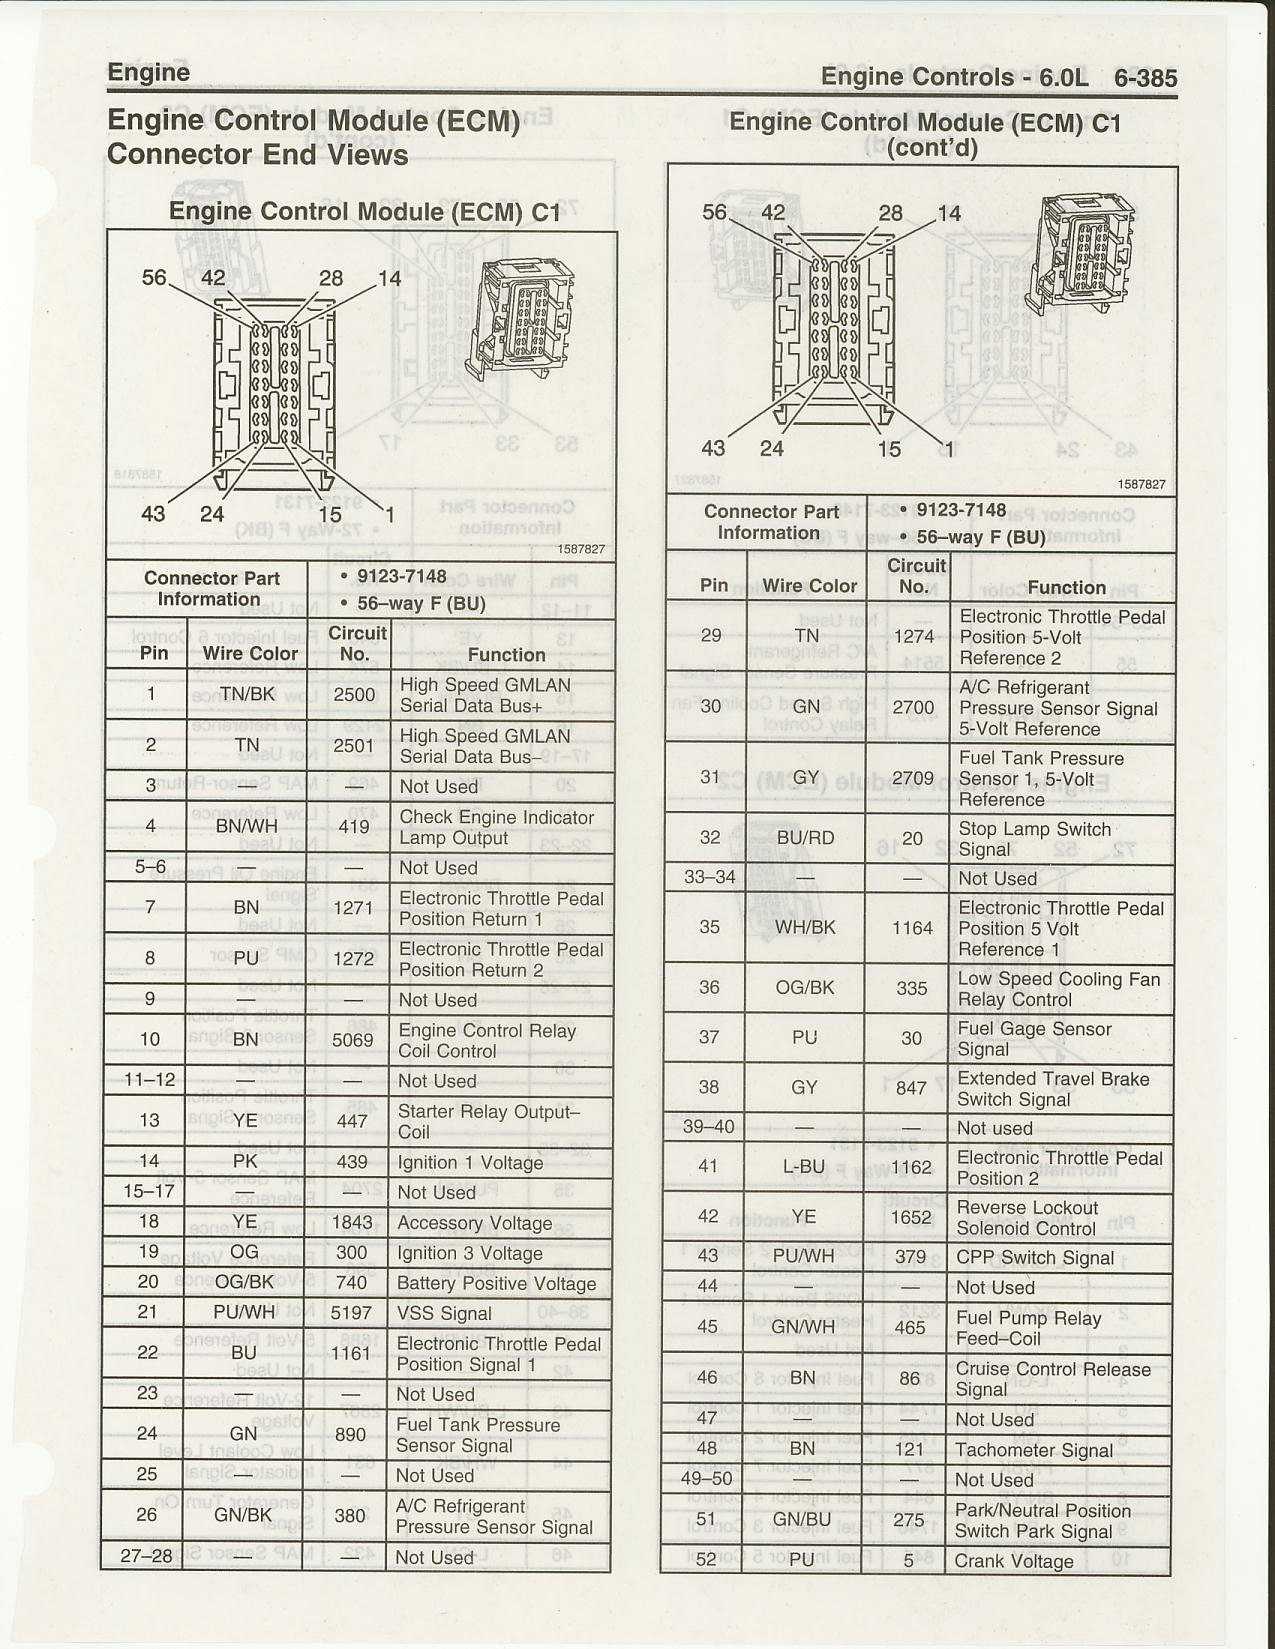 2006 Gmc Pcm Wiring Diagram Content Resource Of Topkick Pinouts And Diagrams Page 4 Ls1tech Camaro Firebird Rh Com 2005 Truck 2002 Radio